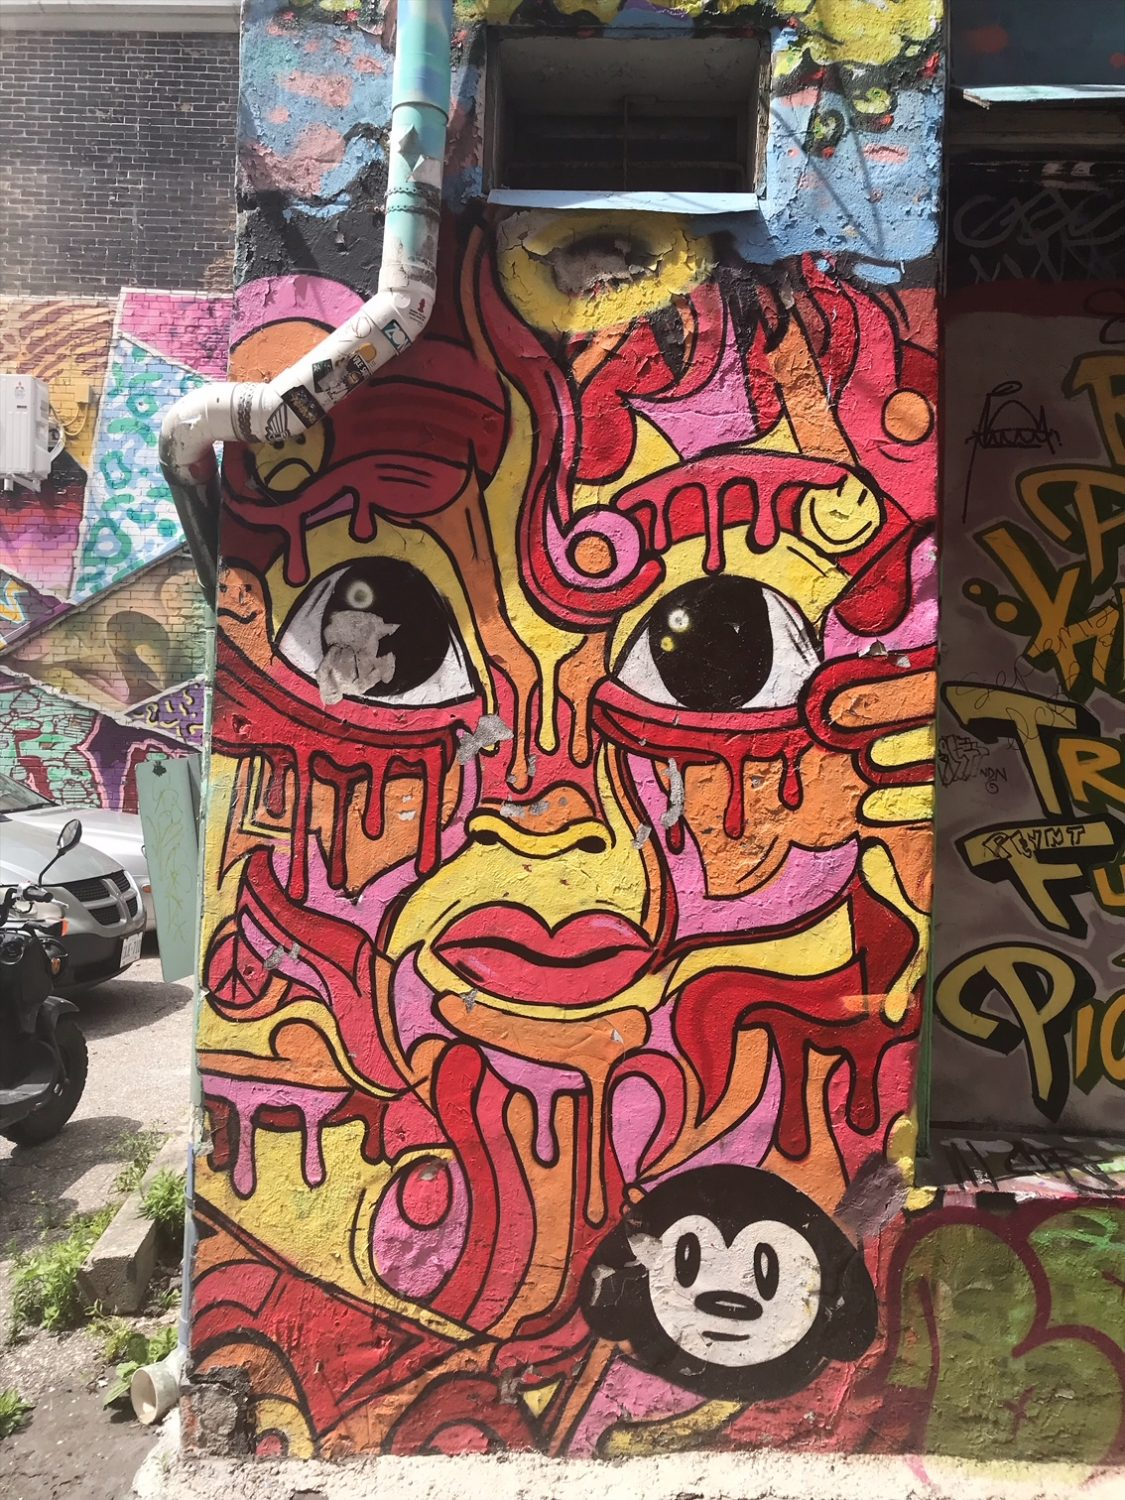 Graffiti Alley in Toronto, Ontario